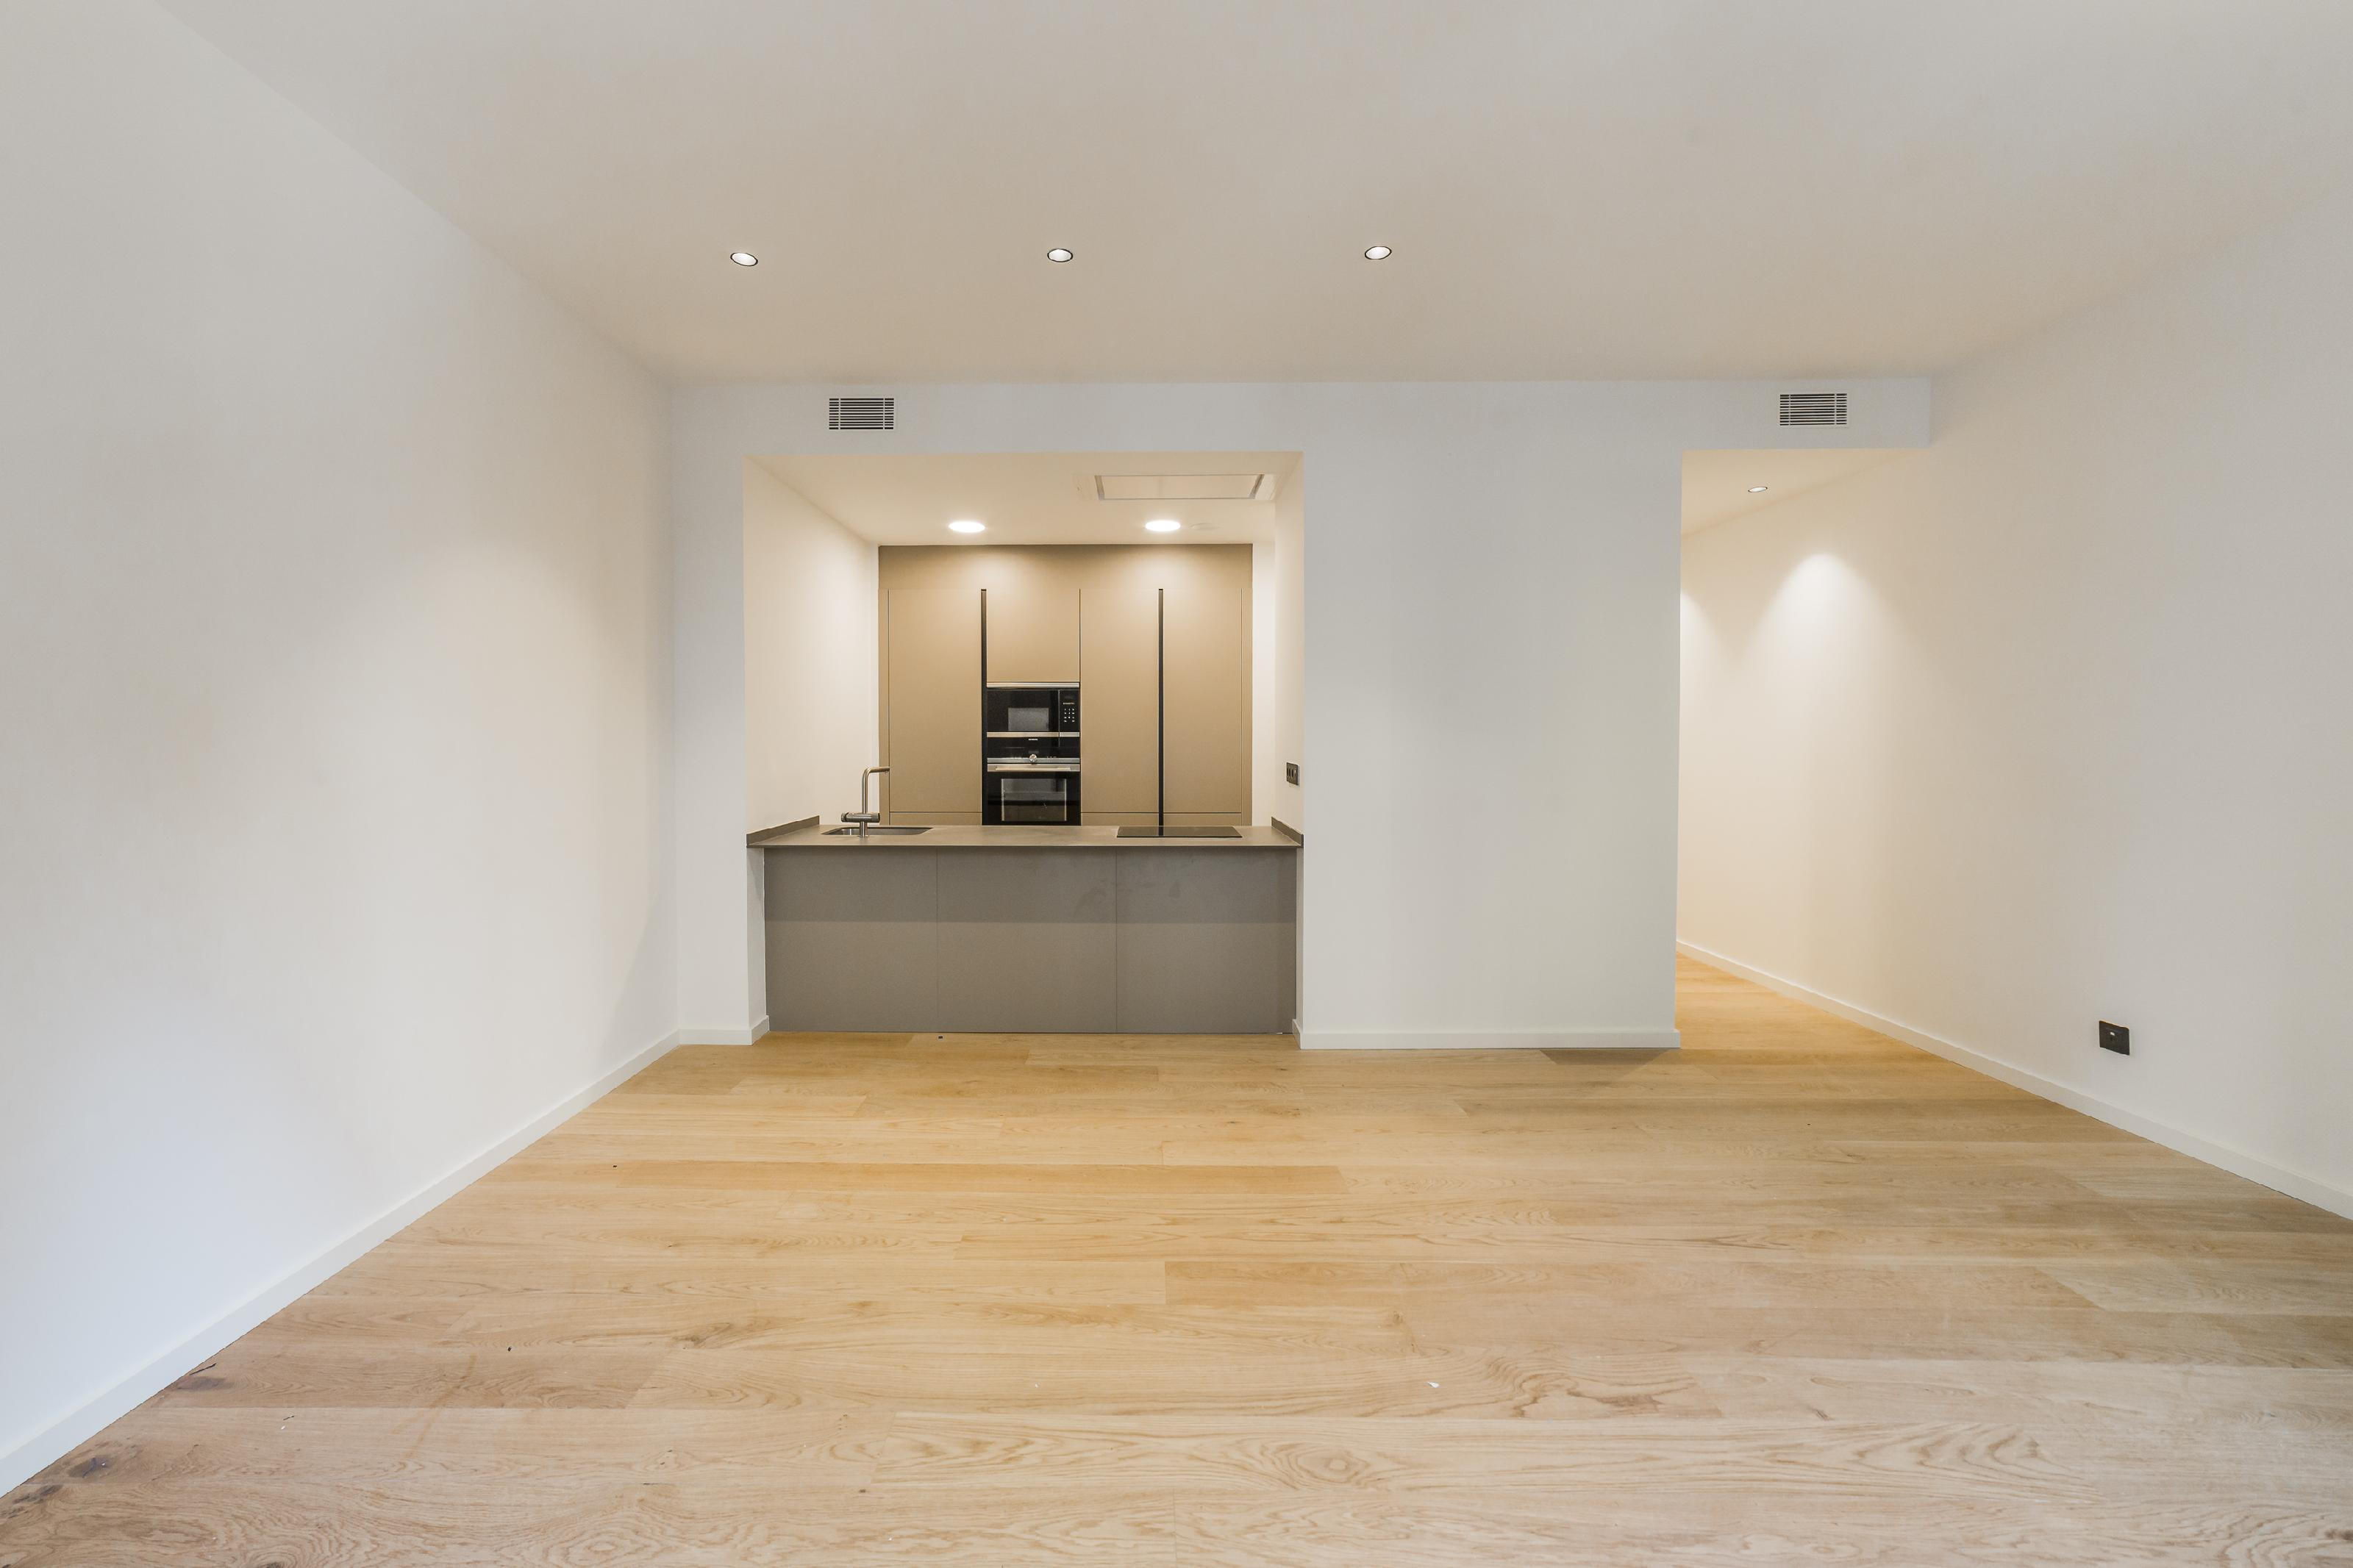 182176 Apartment for sale in Eixample, Old Left Eixample 7